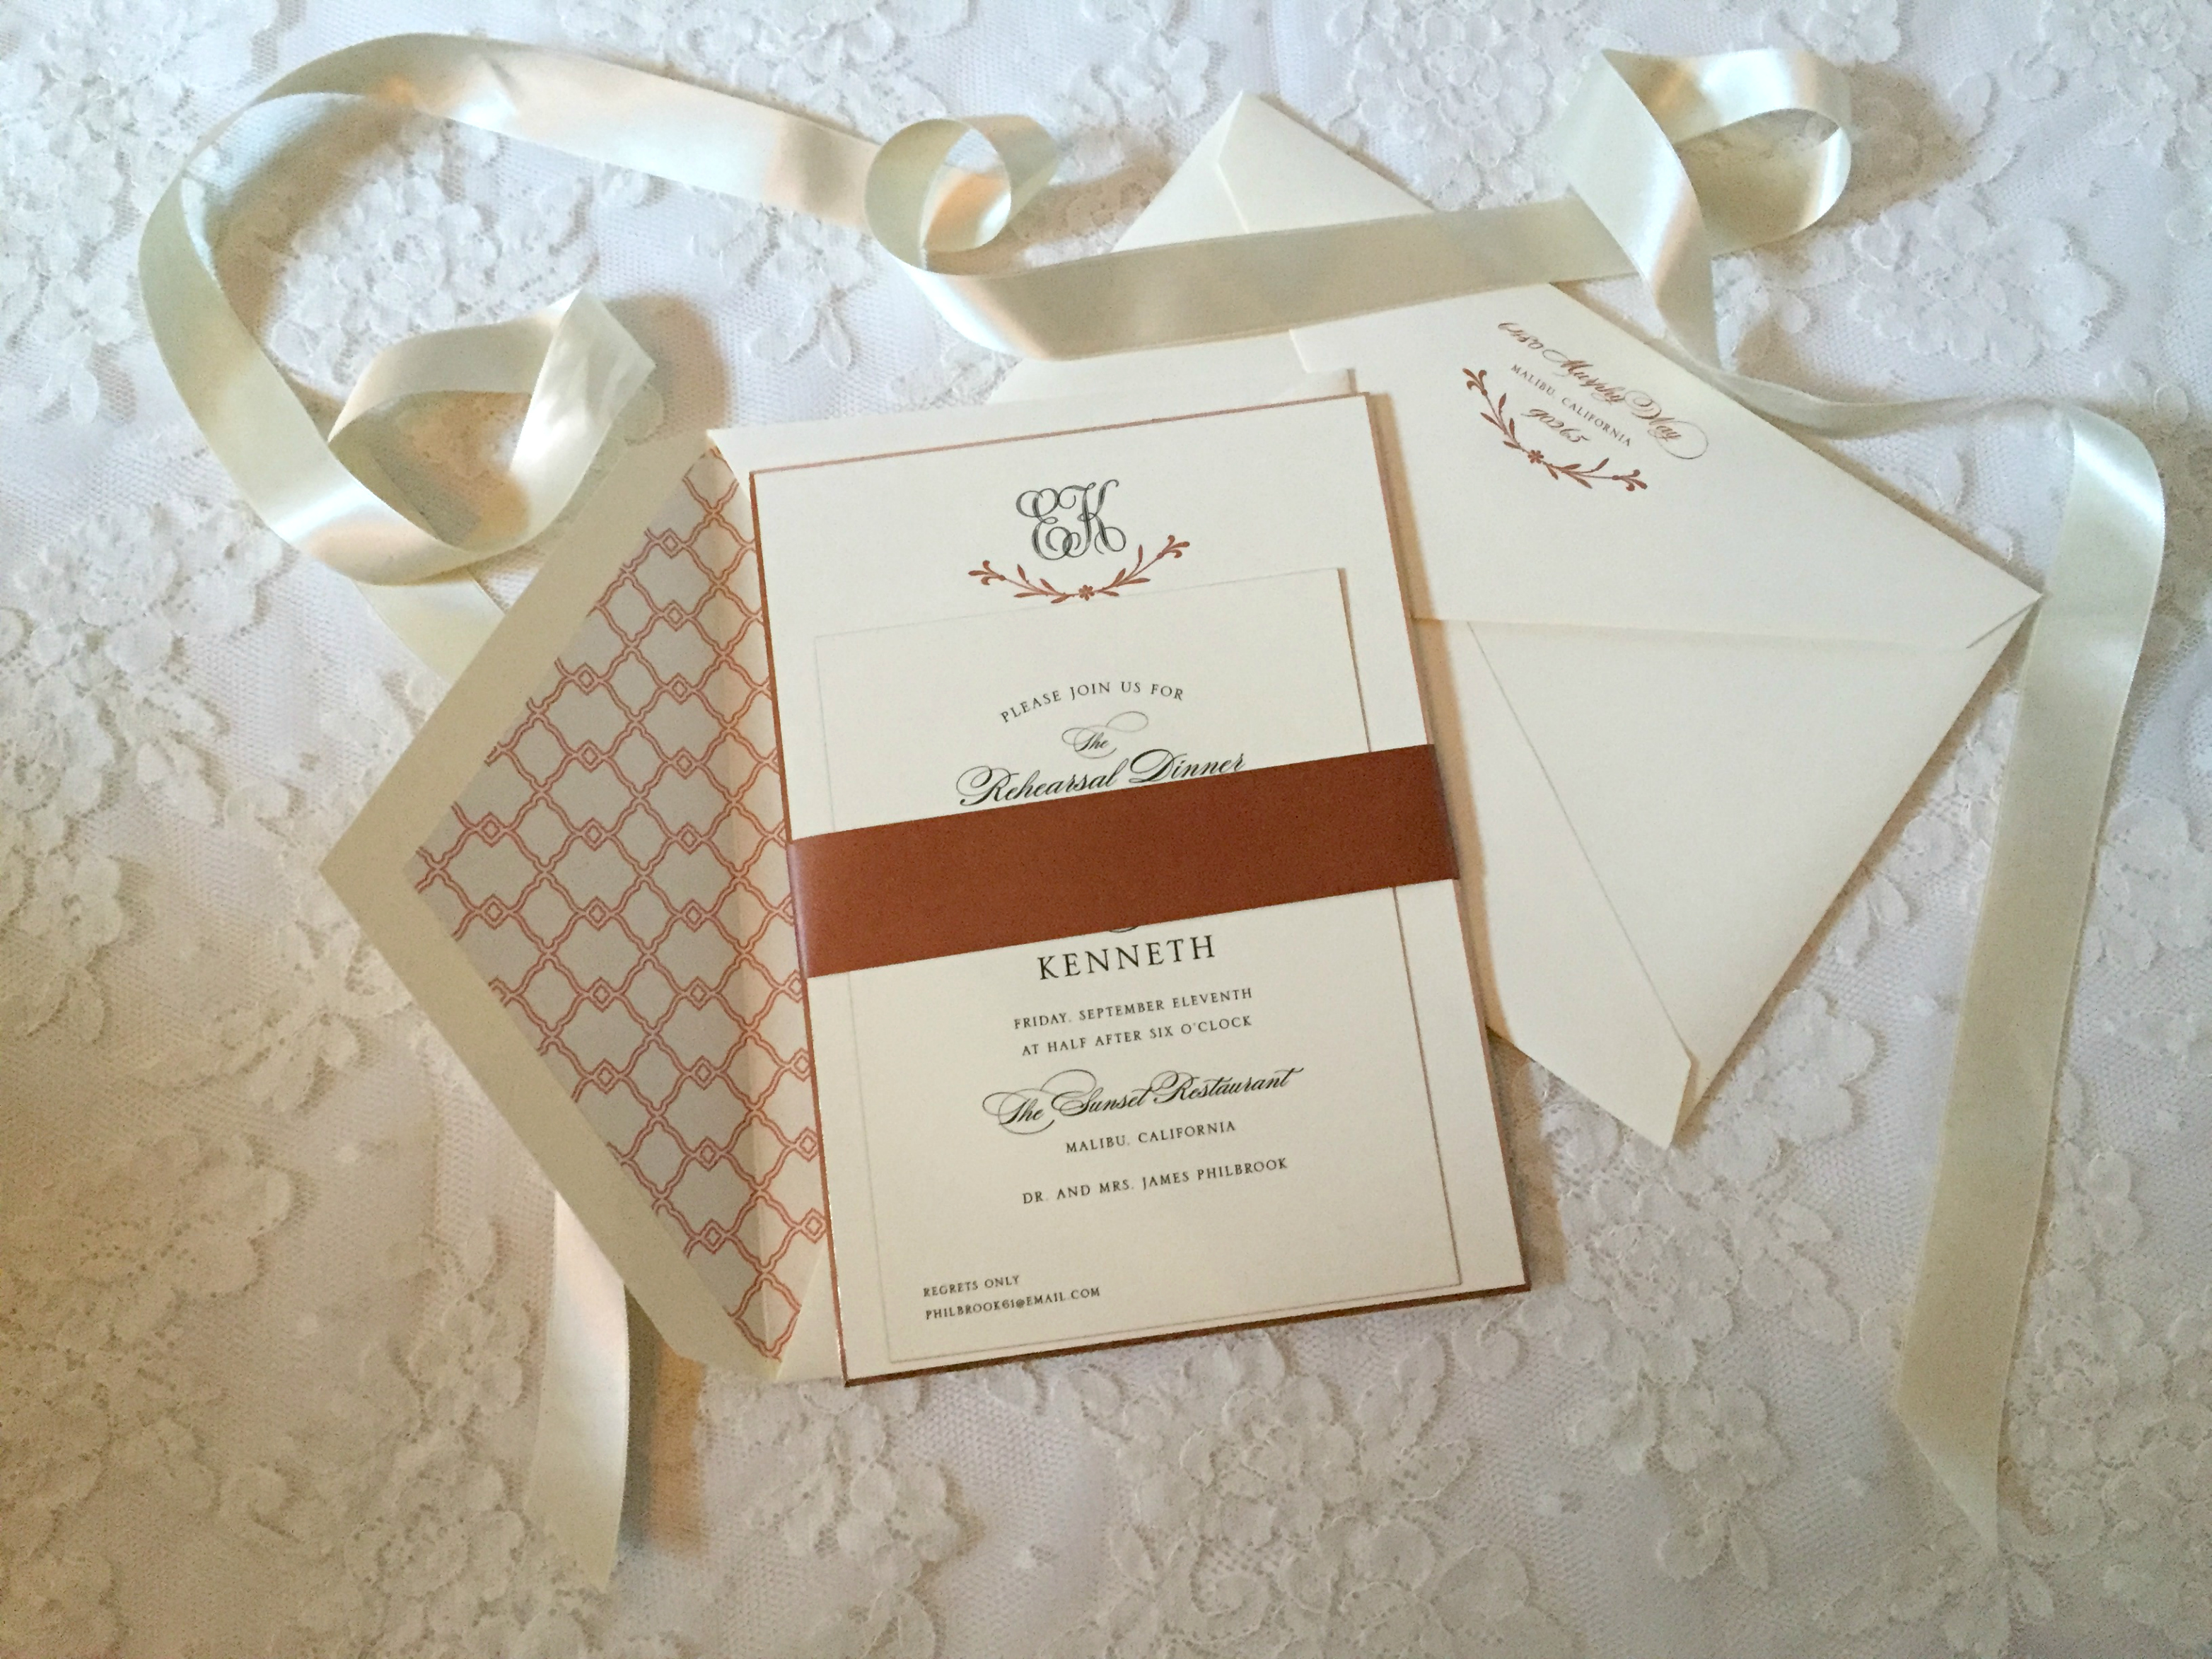 Wedding Invitations William Arthur: What Every Bride Needs From Head To Toe